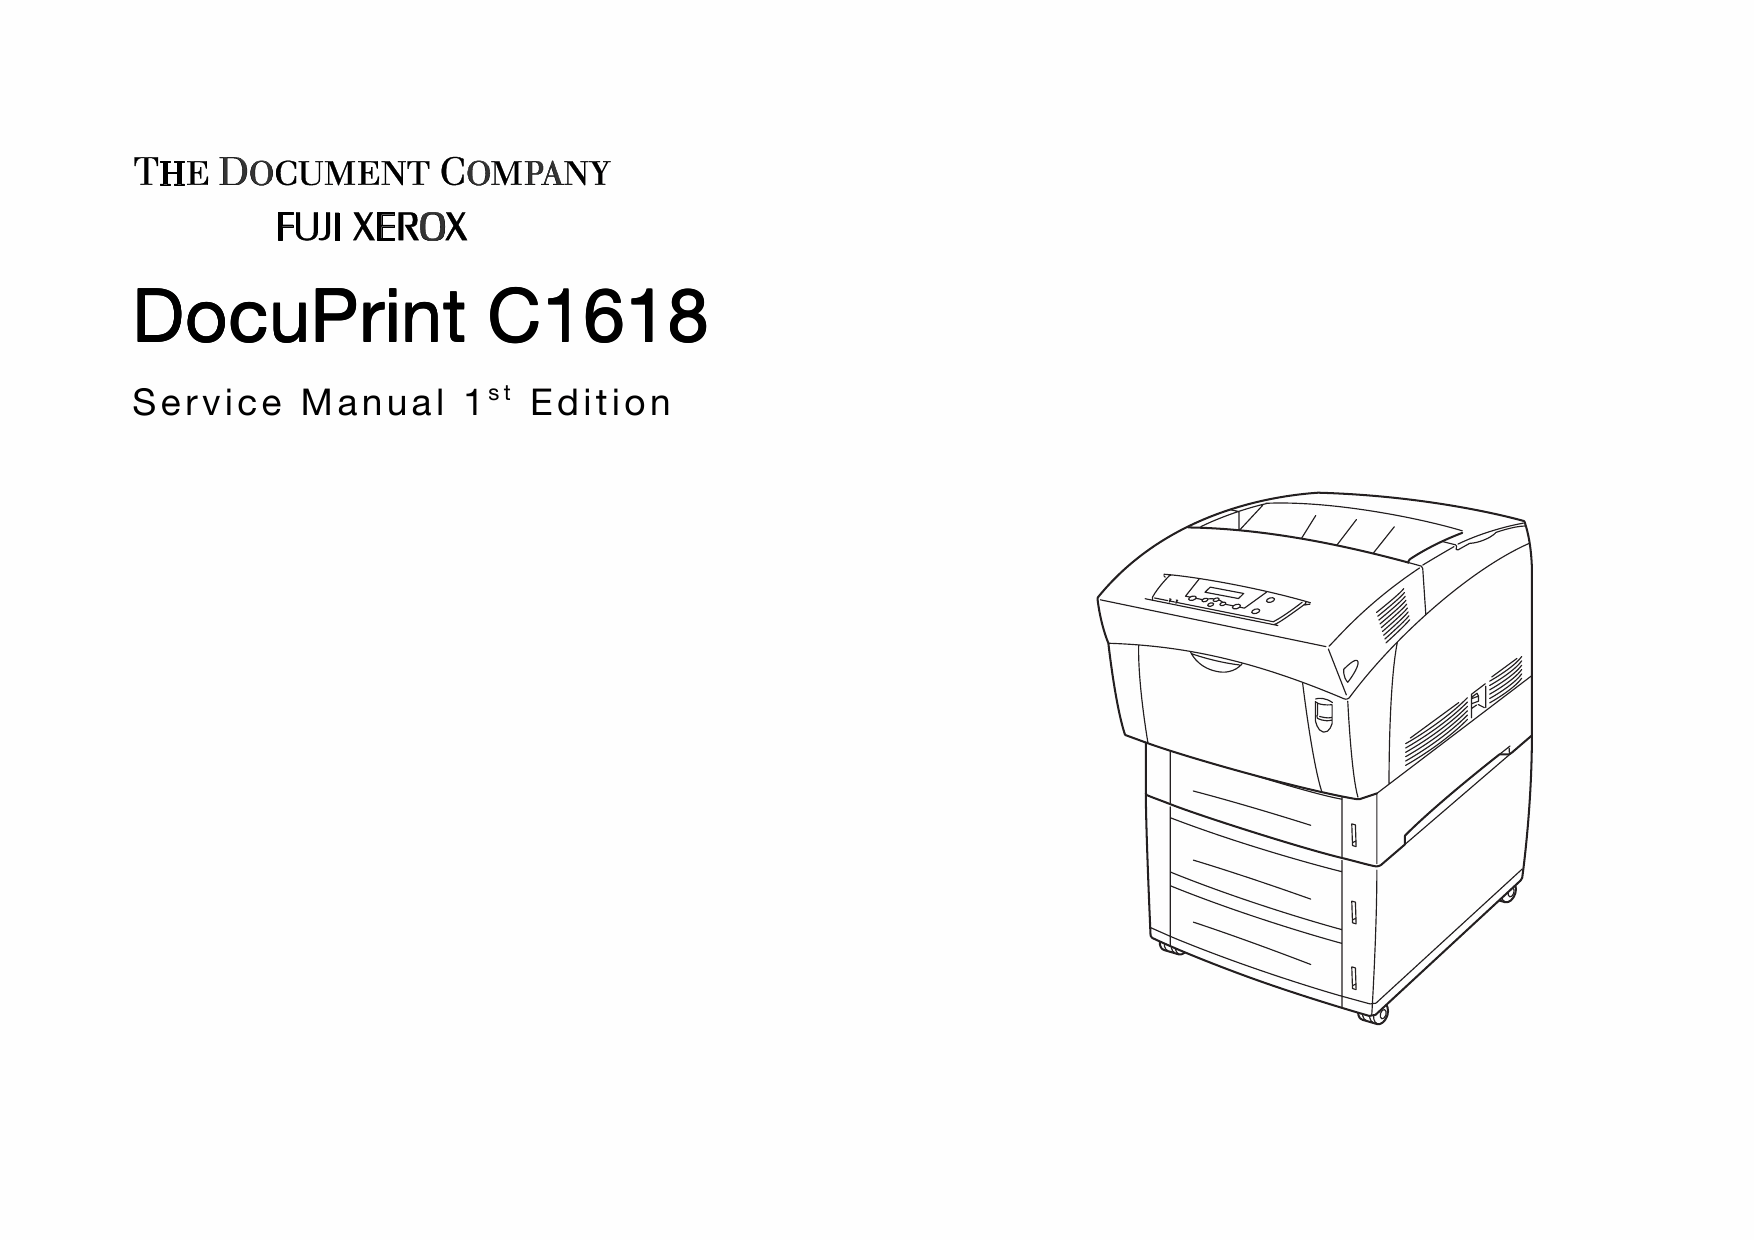 Xerox DocuPrint C1618 Fuji Color Laser Printer Parts List